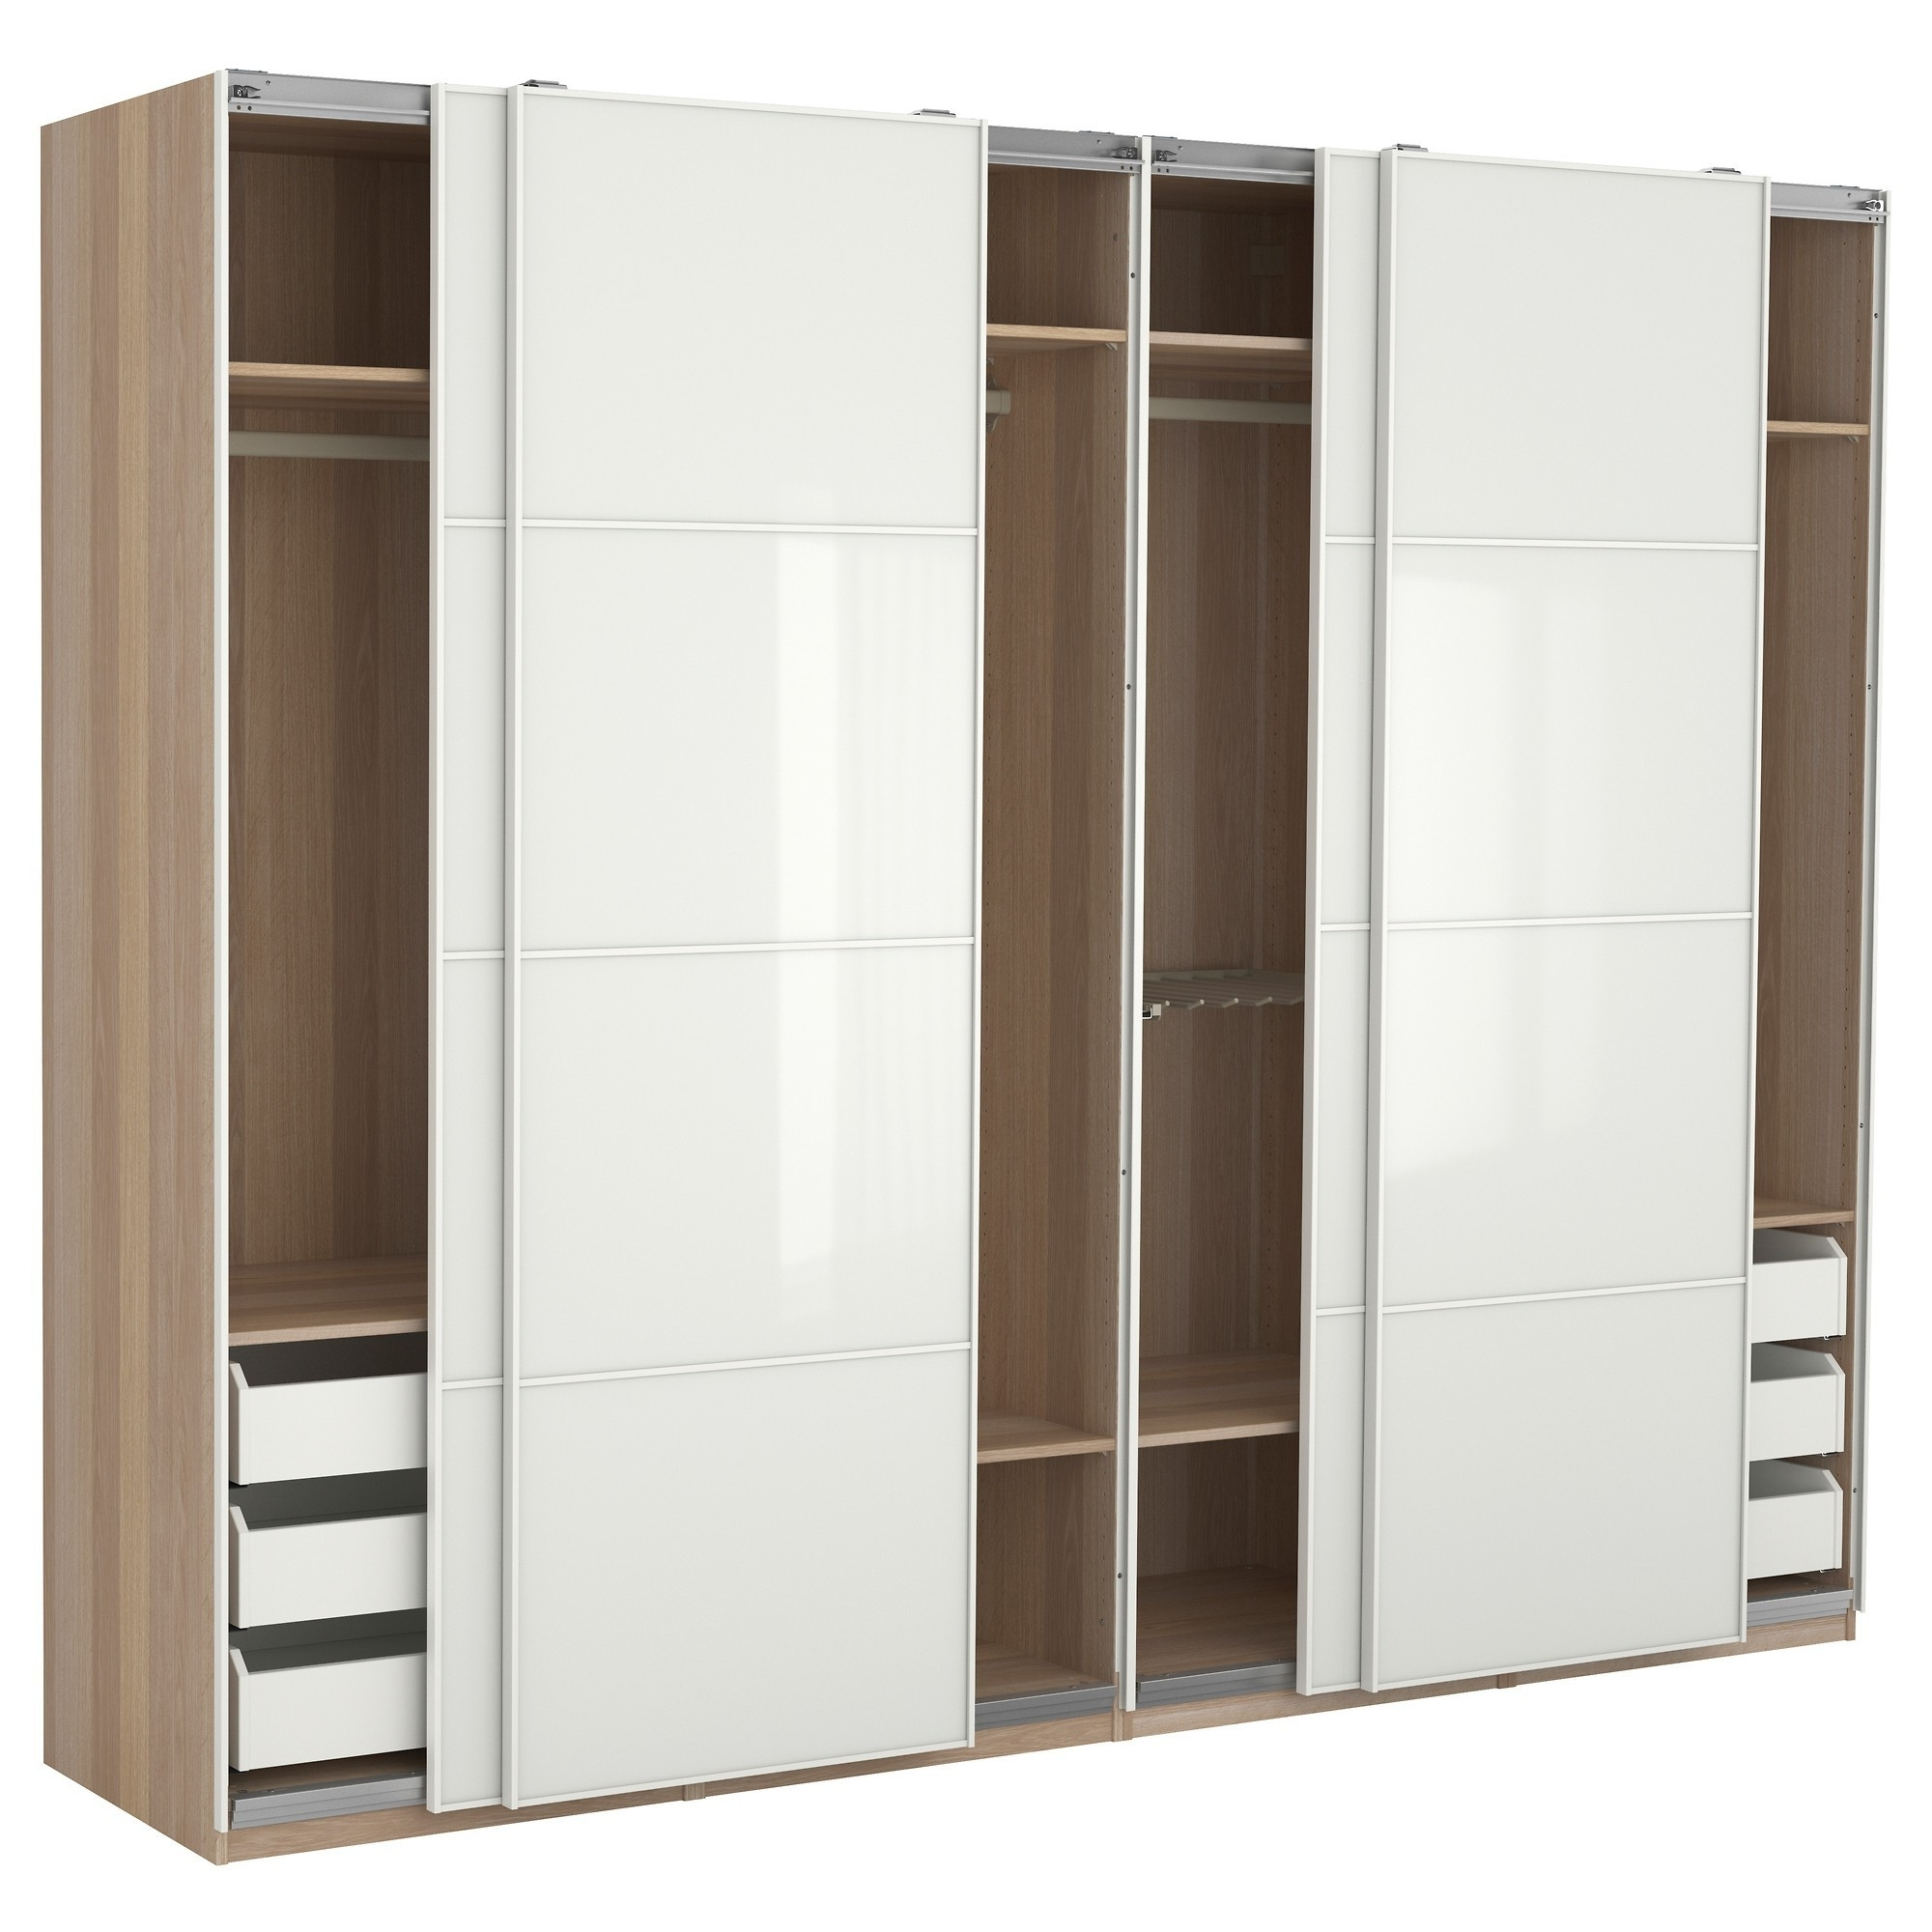 Most Popular Large Wooden Wardrobes Intended For Large Metal Wardrobe Closet Cabinet Wardrobes Armoire Which Will (View 9 of 15)